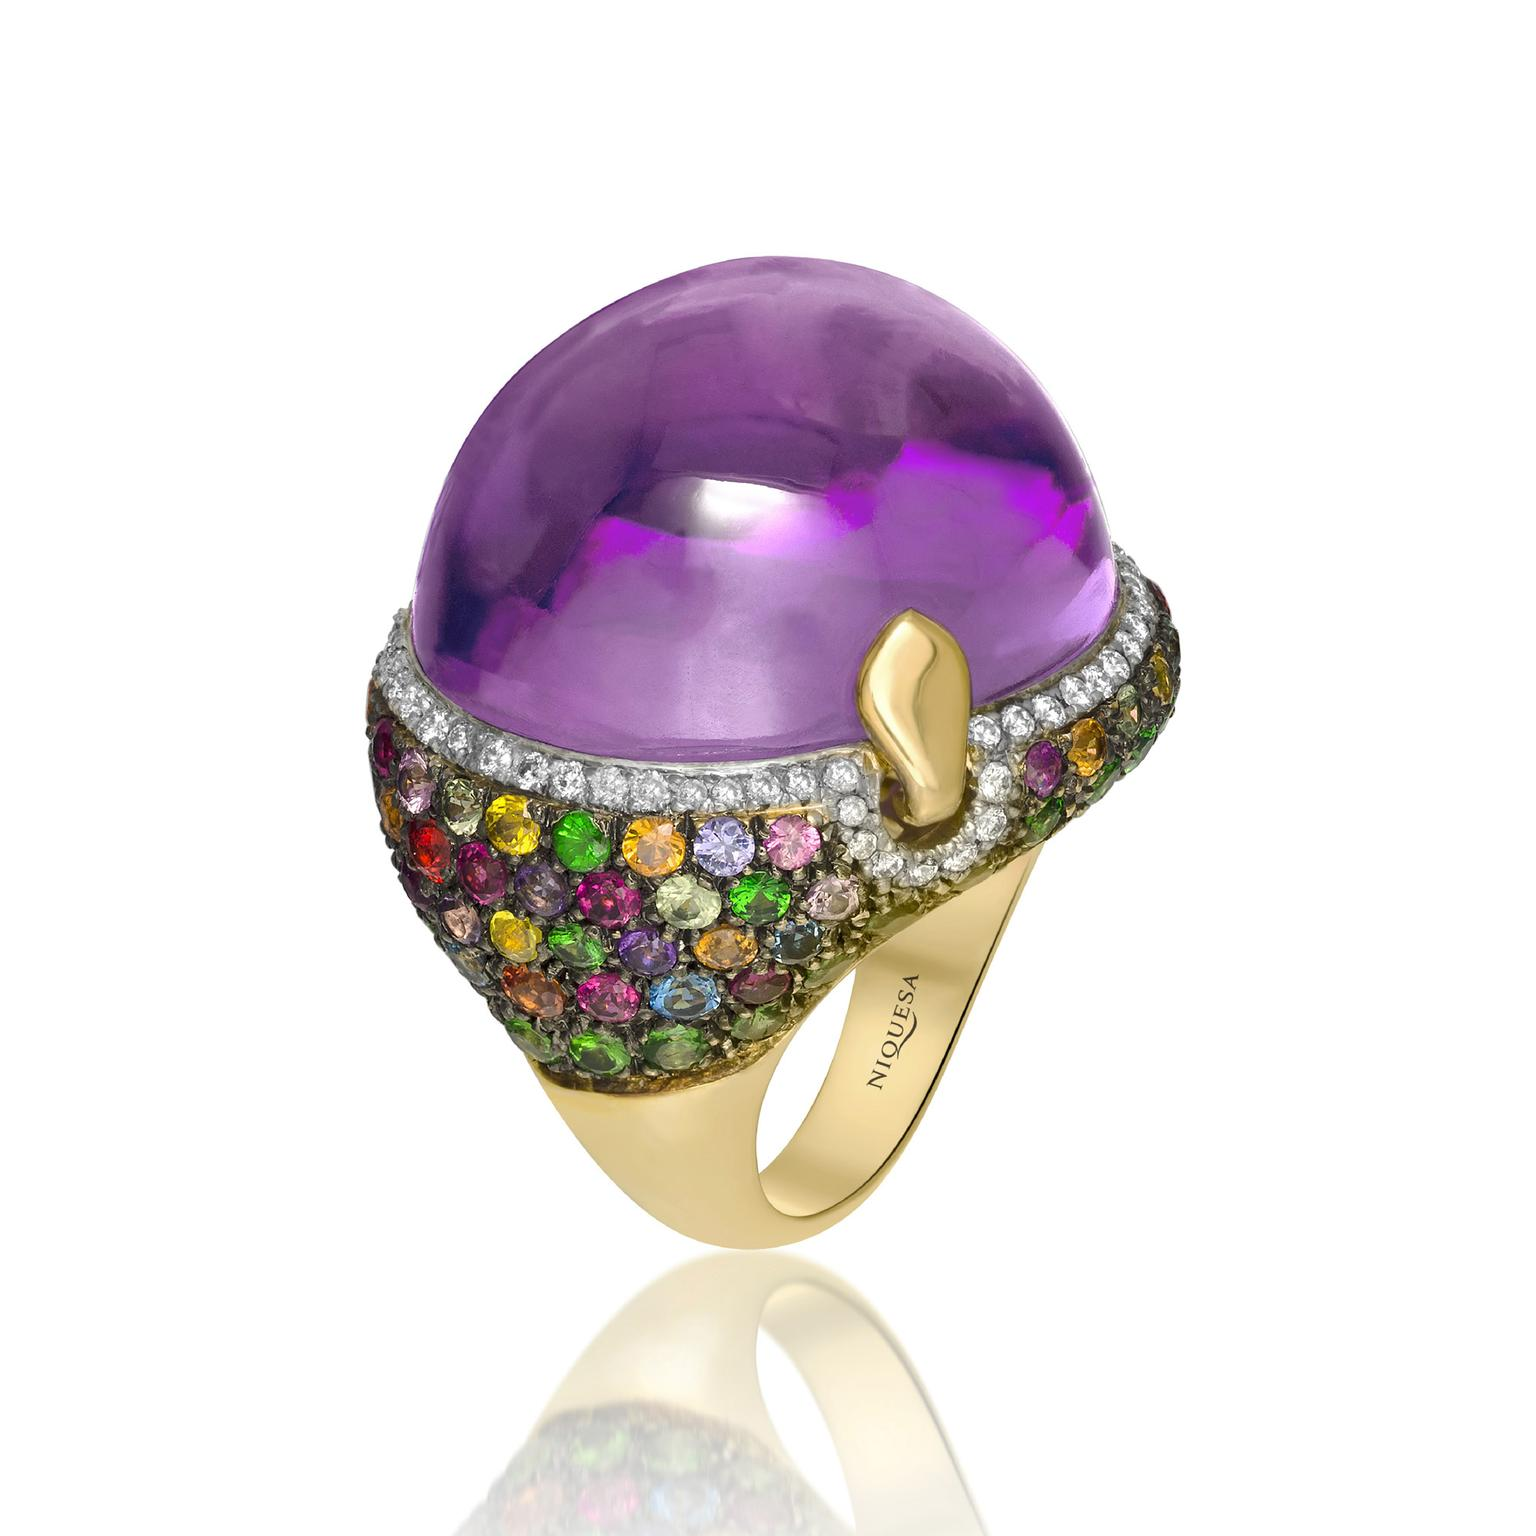 Niquesa amethyst ring